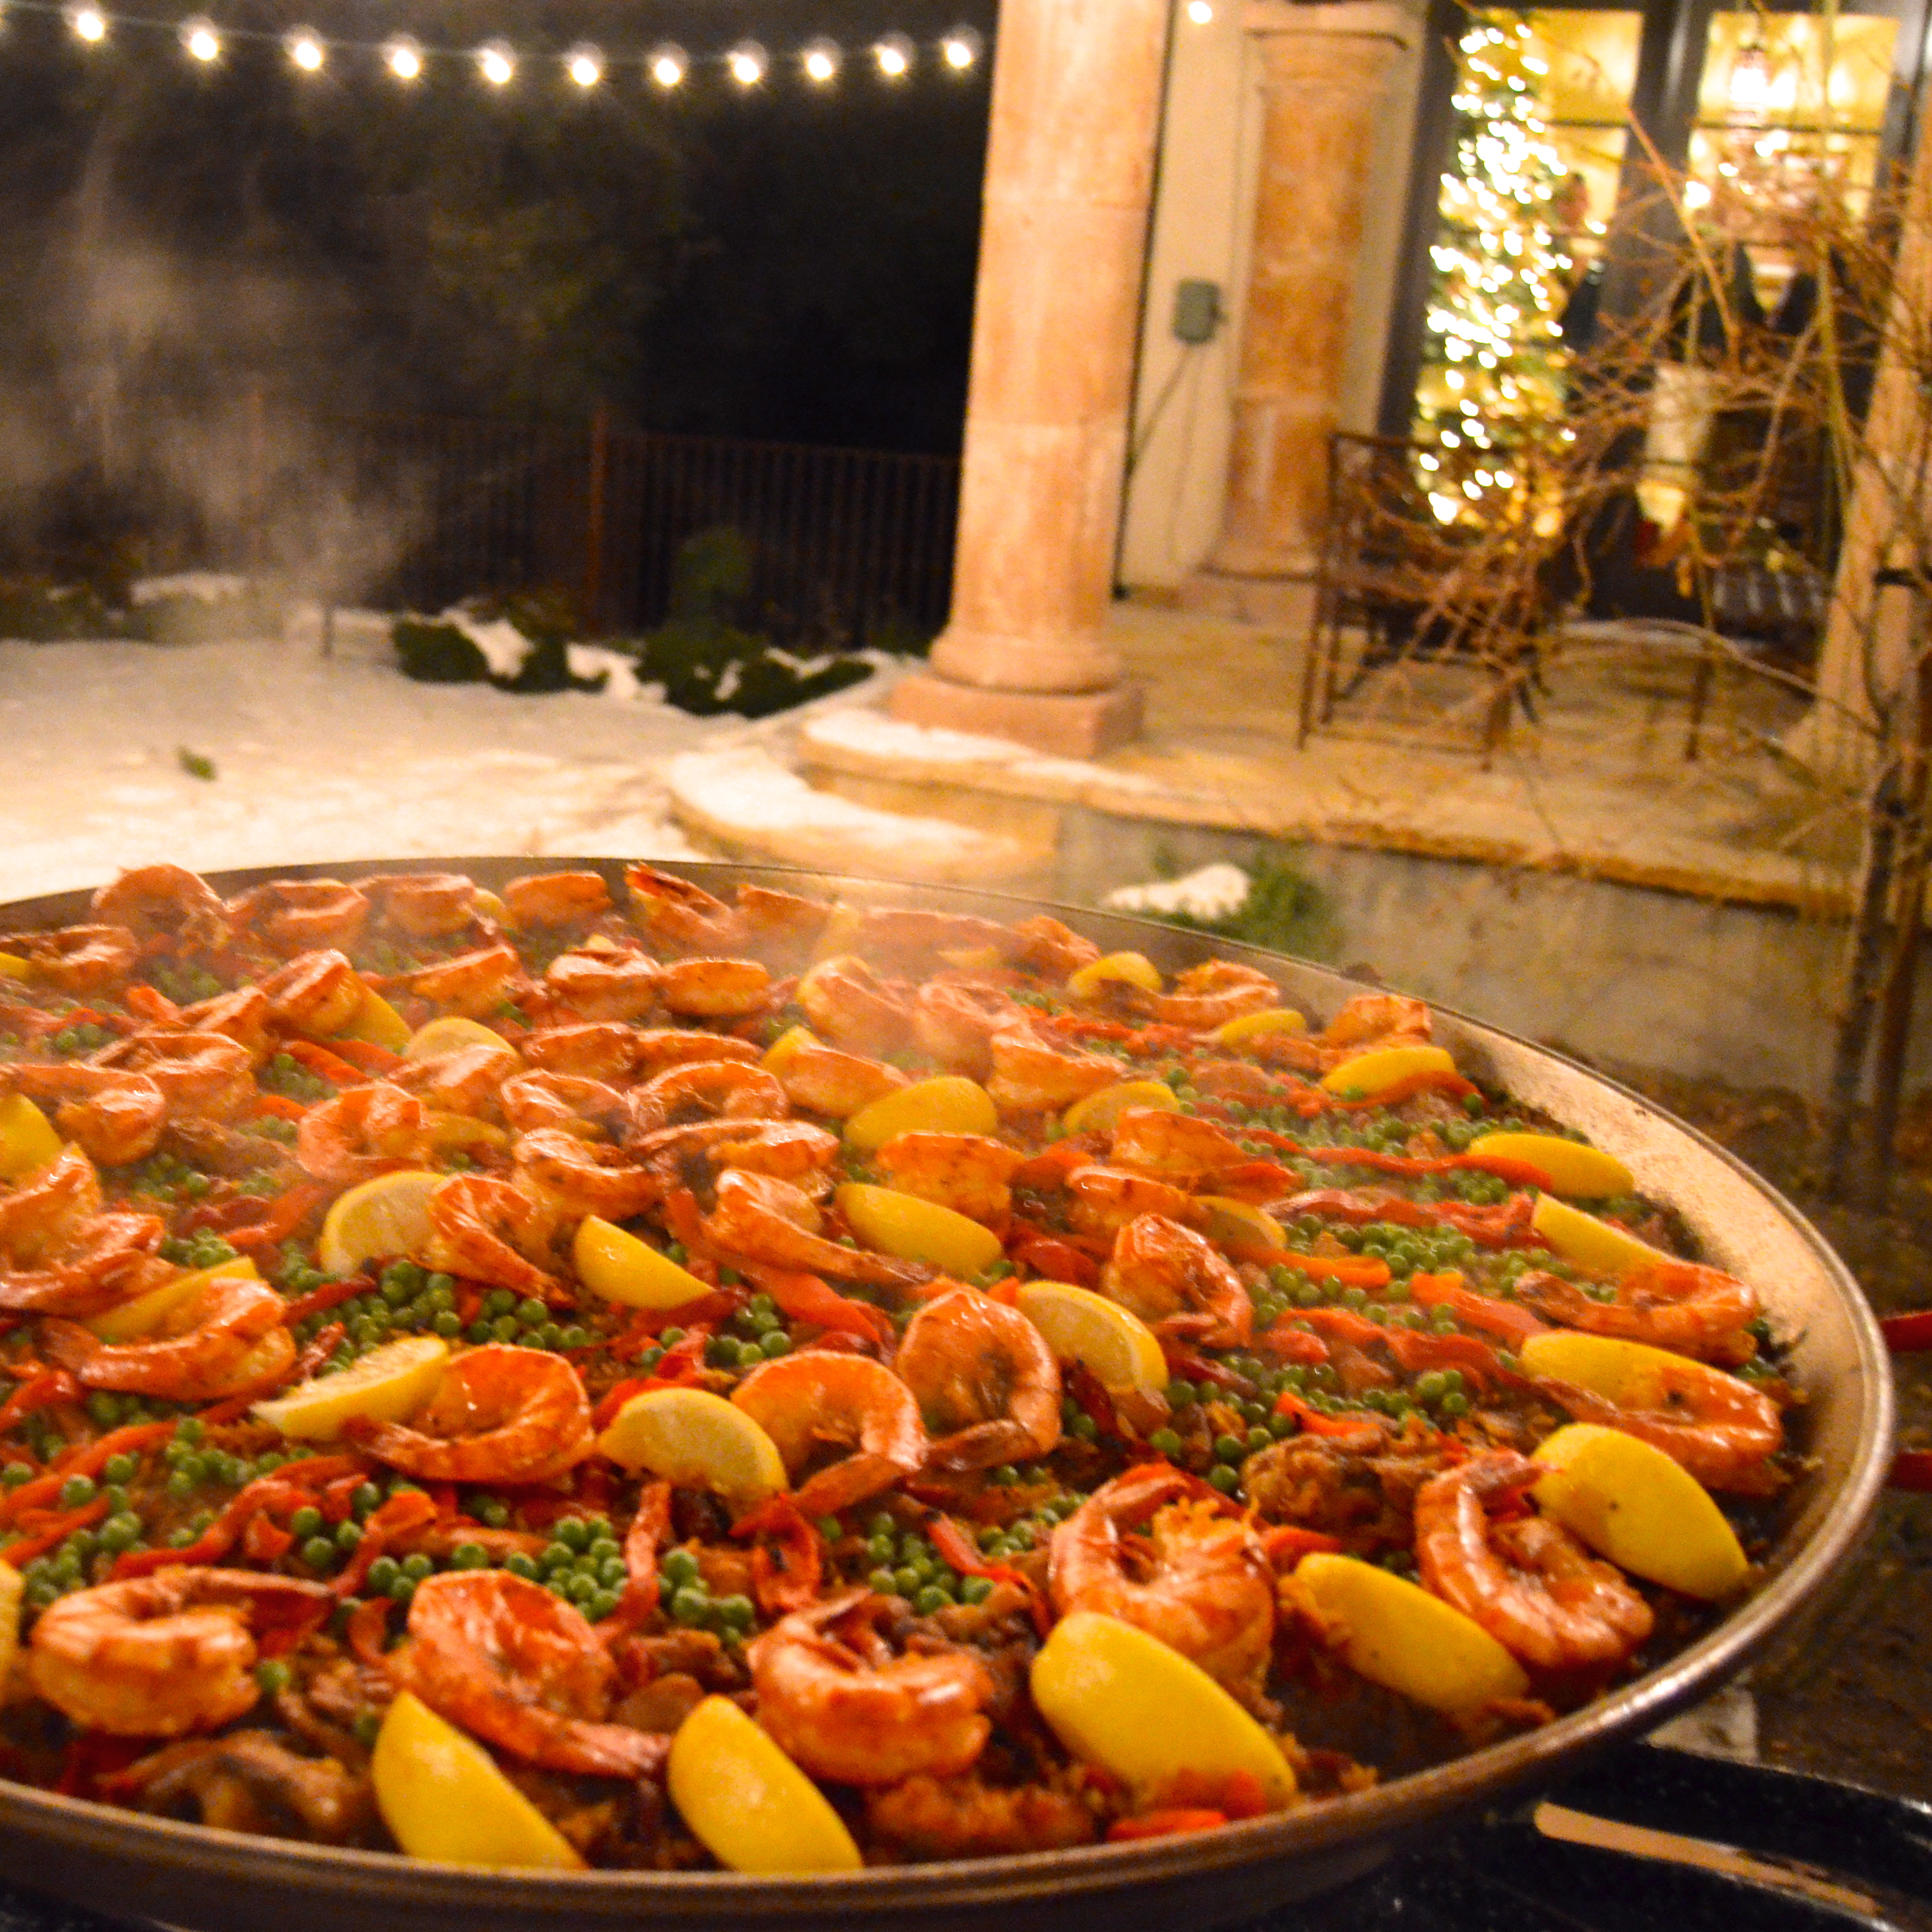 Lemon Law California >> CHRISTMAS SPANISH STYLE - HOW TO MAKE PAELLA - After Orange County